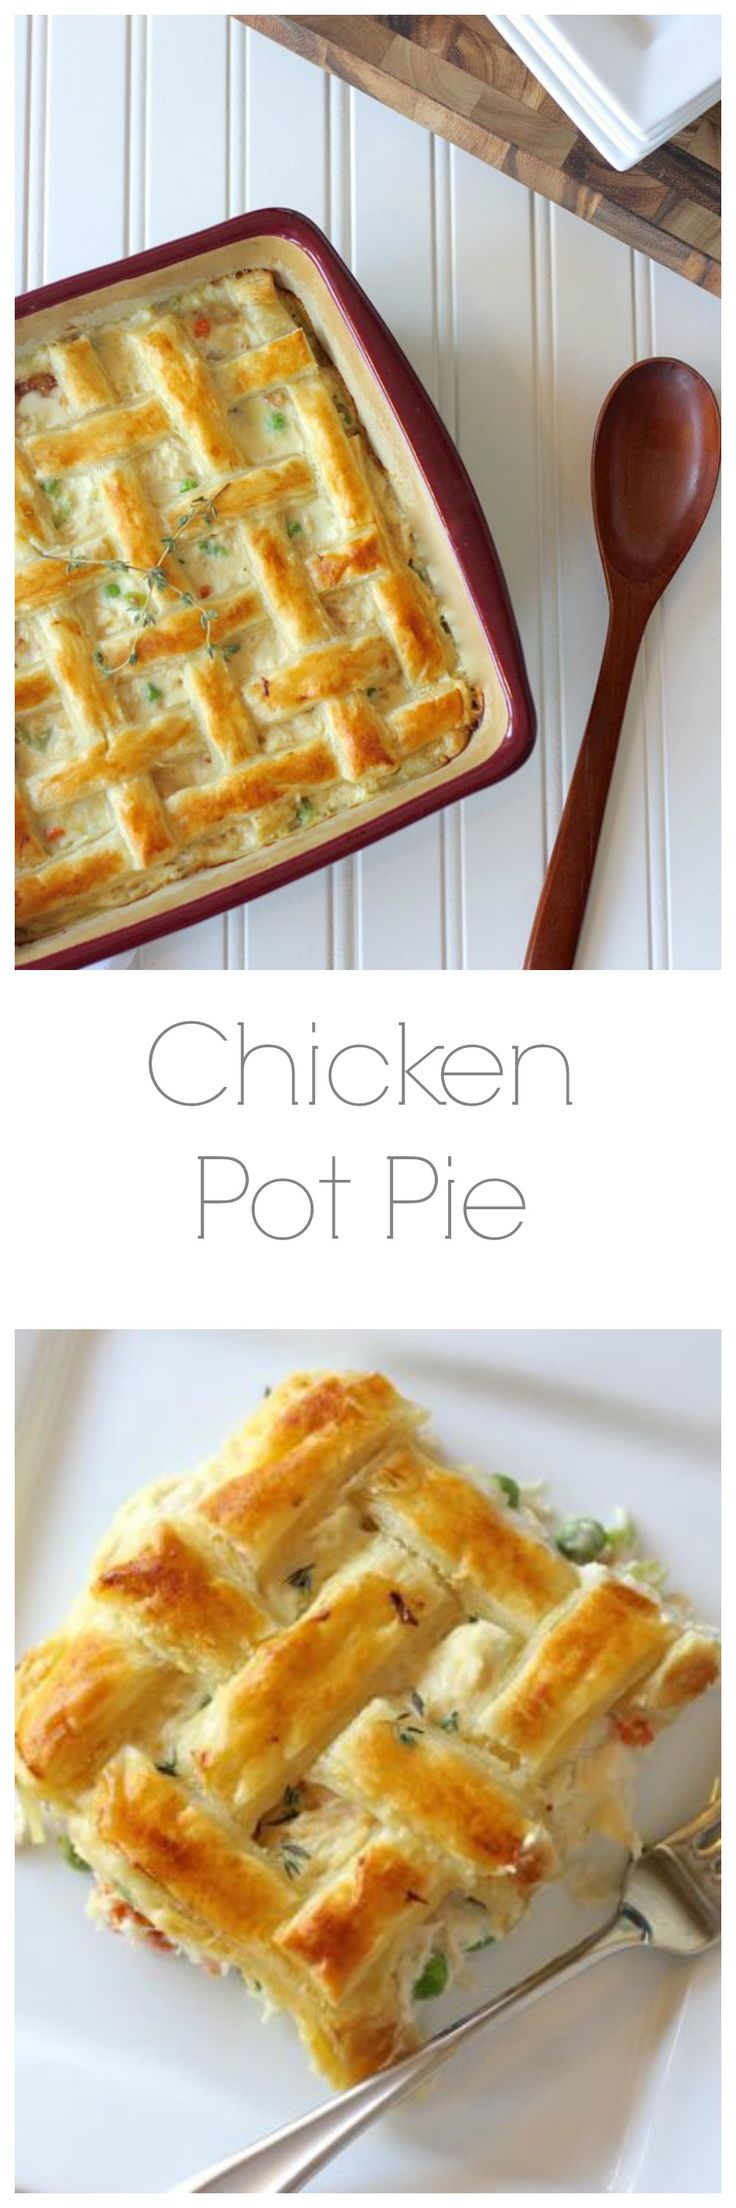 Chicken Pot Pie with three shortcuts to make it quick and easy! #potpie #foodporn #dan330 http://livedan330.com/2015/02/25/chicken-pot-pie/